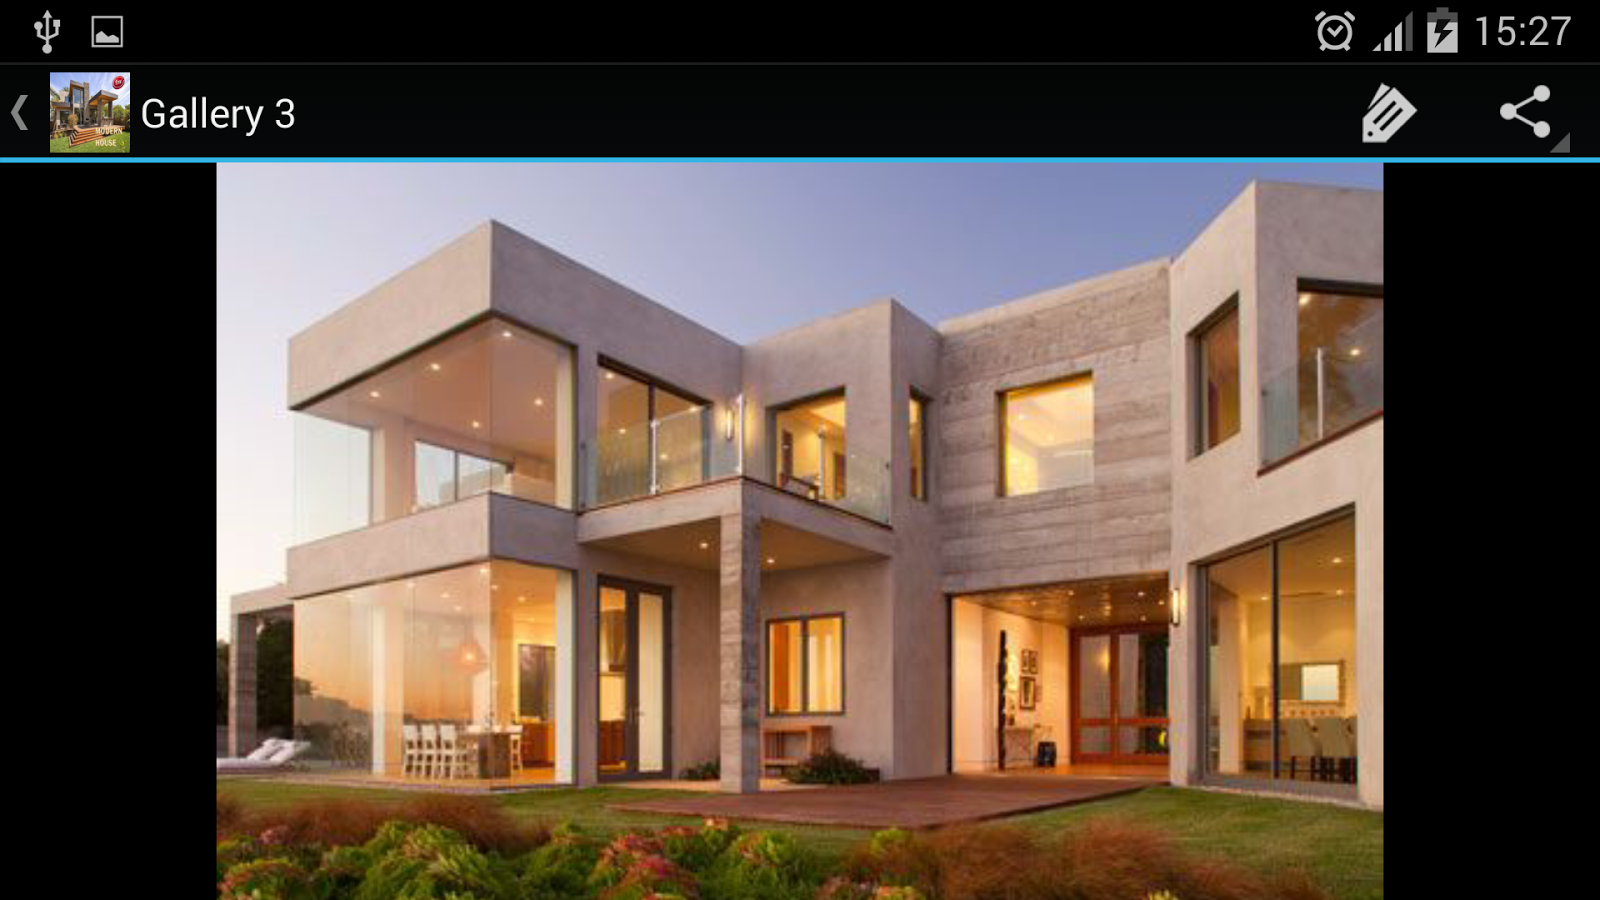 Modern house designs android apps on google play for New design house image